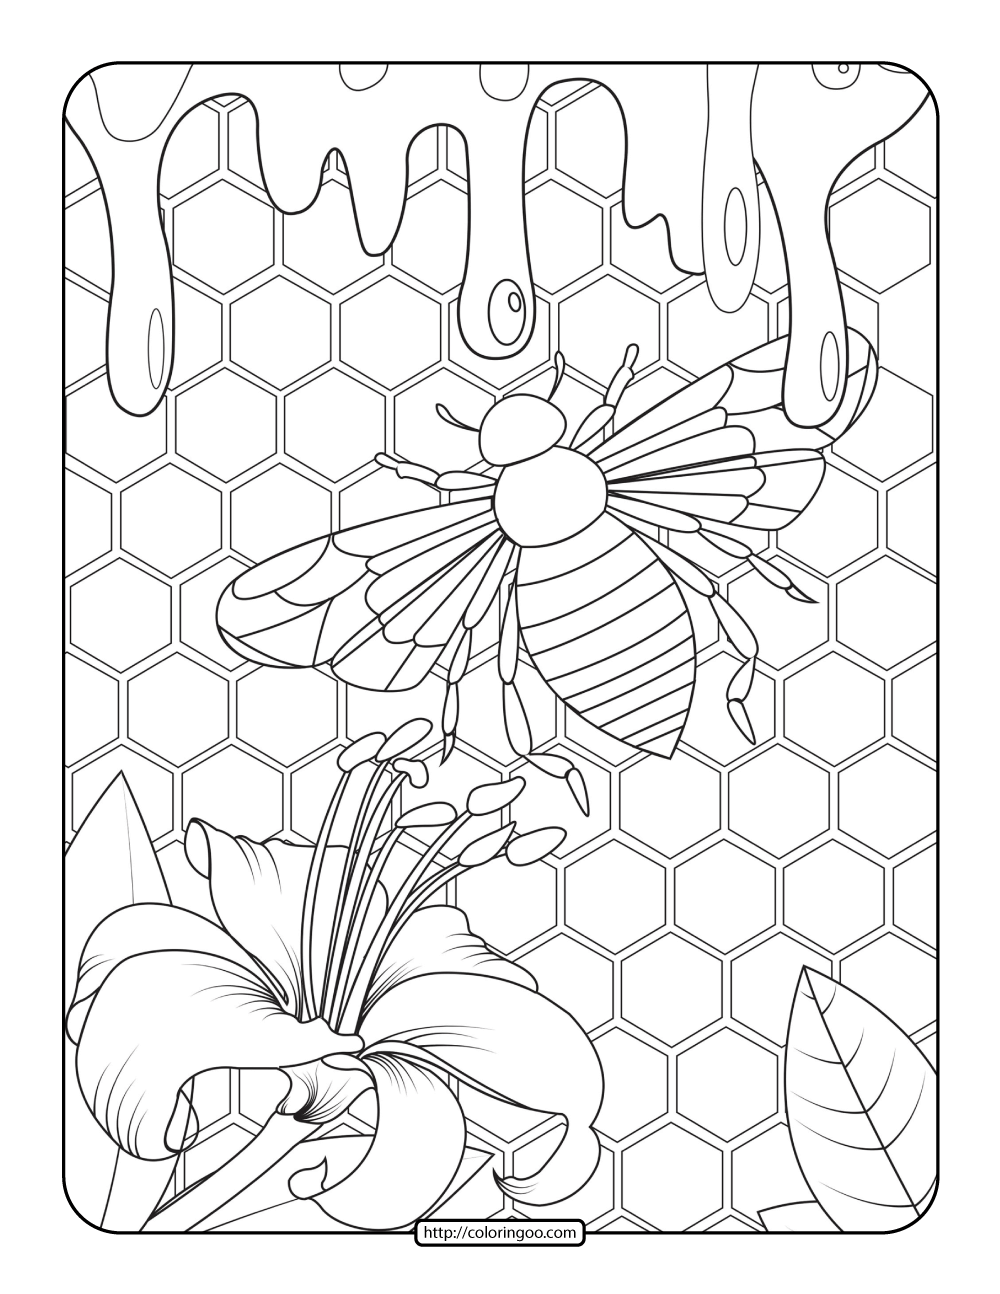 Bee and Honey Adult Coloring Pages